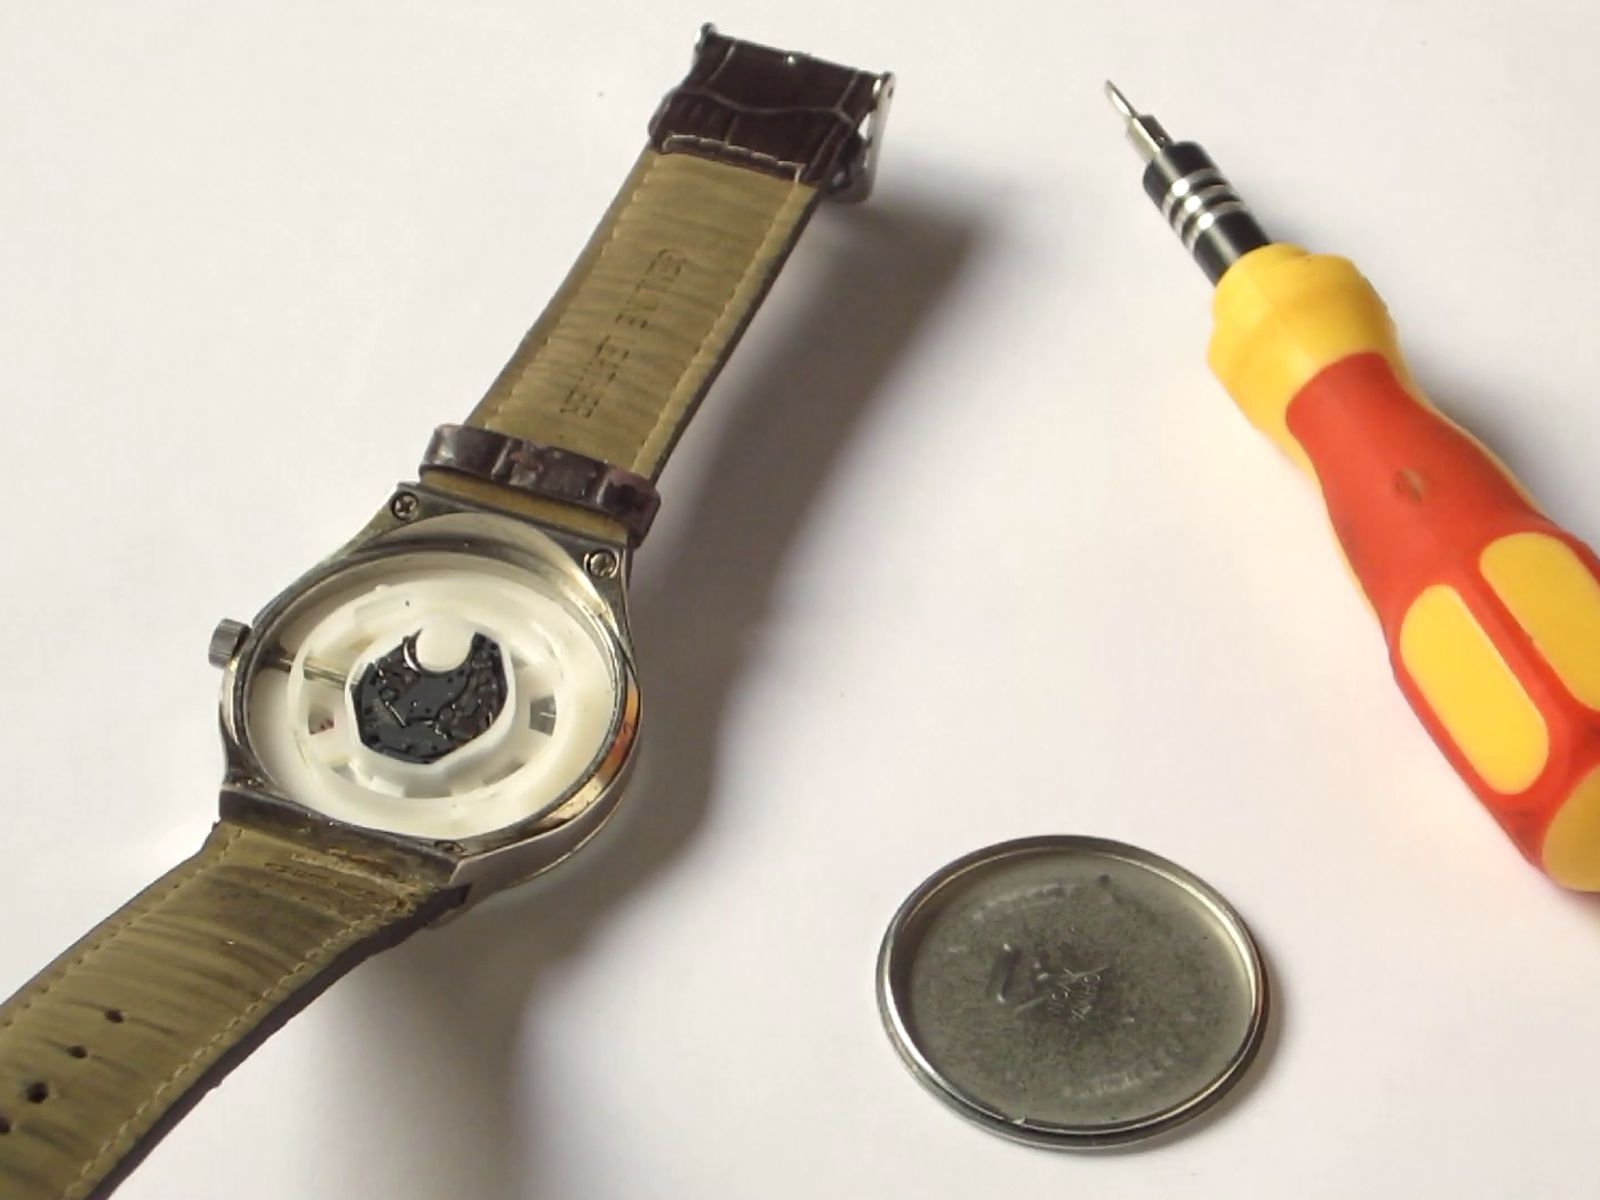 Change a Watch Battery Without Tools Watches, Change, Tools